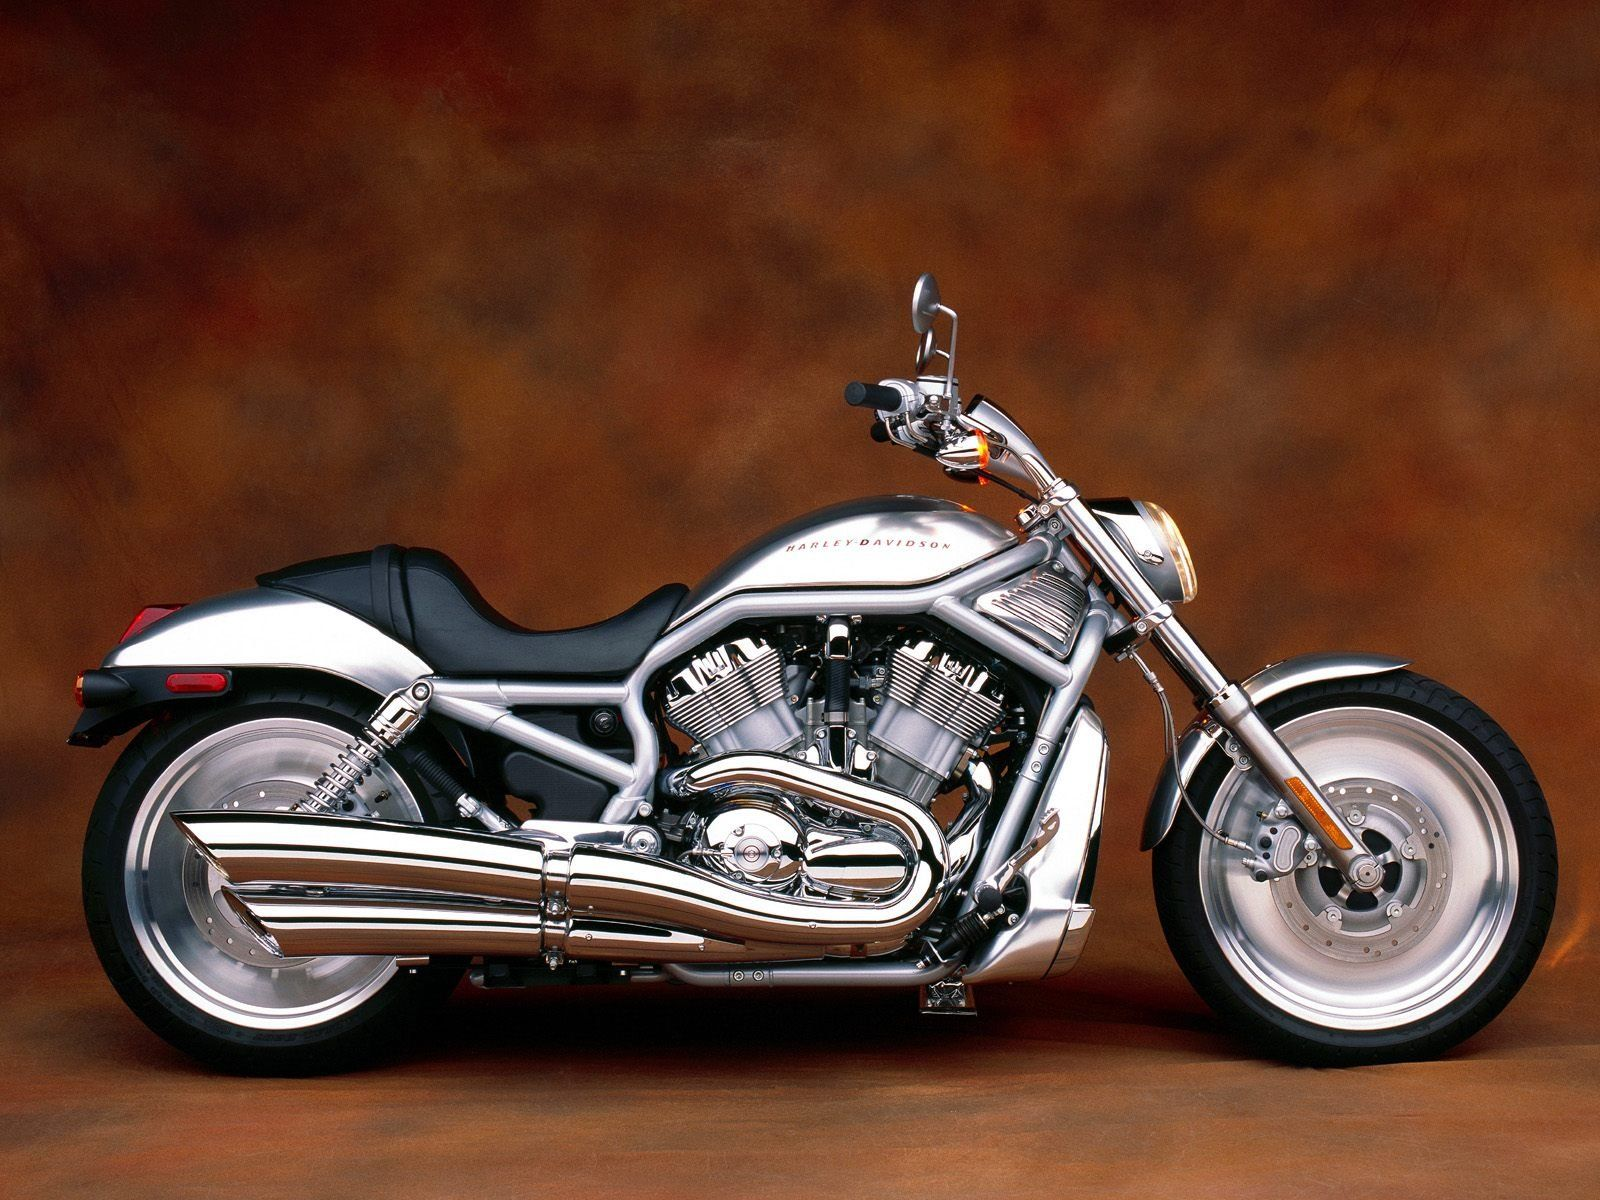 I love this bike and if i get another this will be it. I cruised it all  over savannah. FAST.